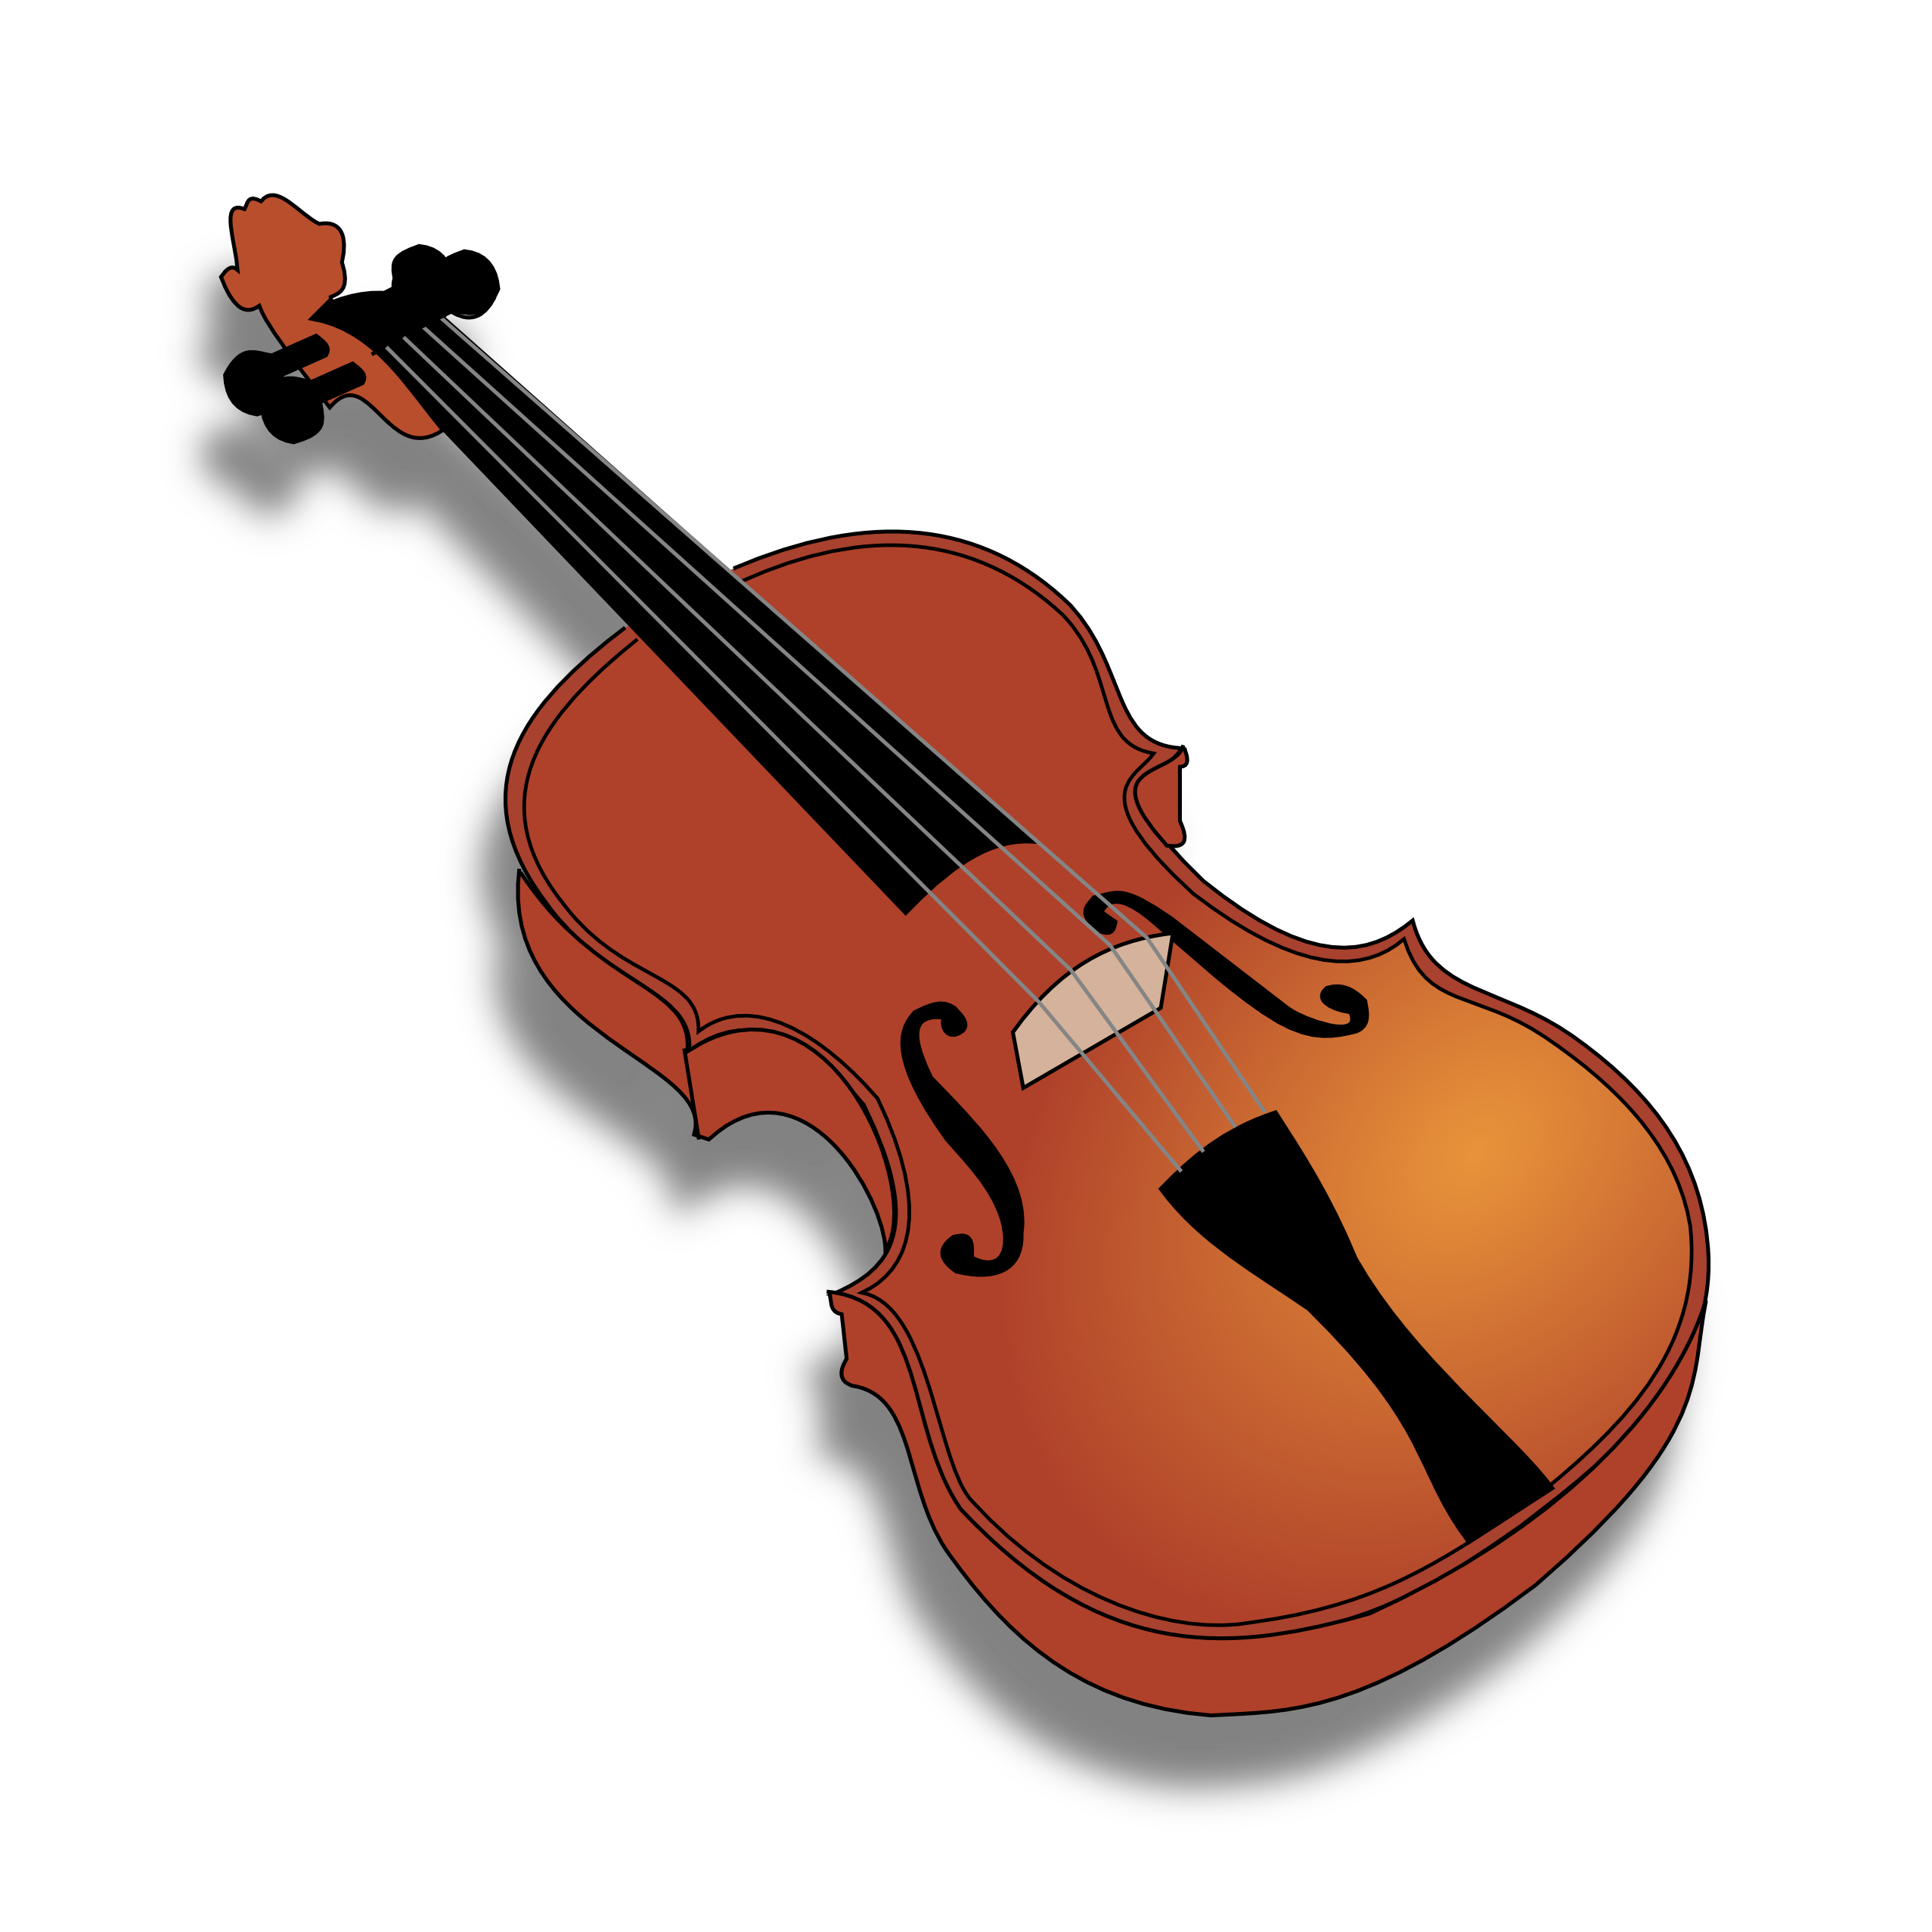 Violin with cello whimsical clipart clip art free stock Instruments clipart free download on WebStockReview clip art free stock